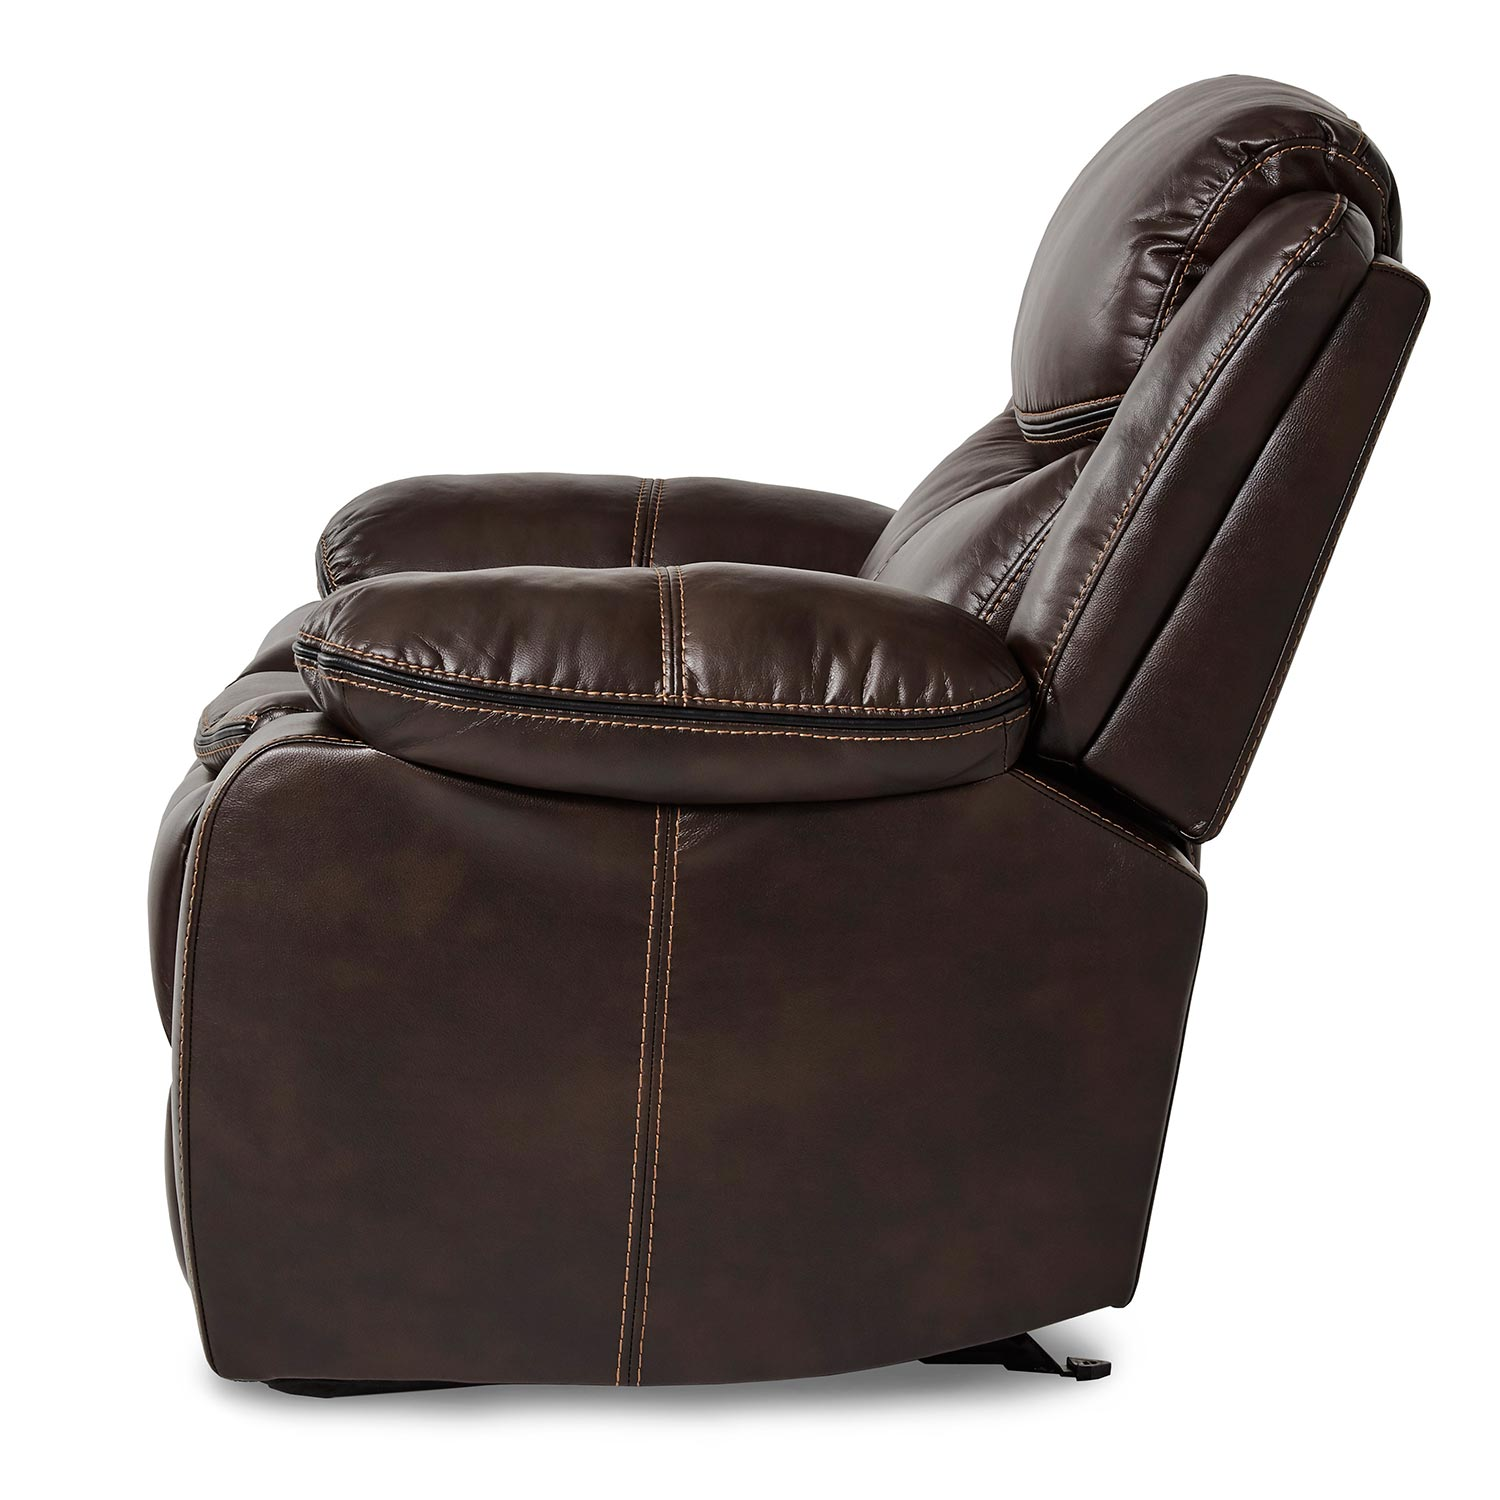 Homelegance Bastrop Glider Reclining Chair - Dark Brown